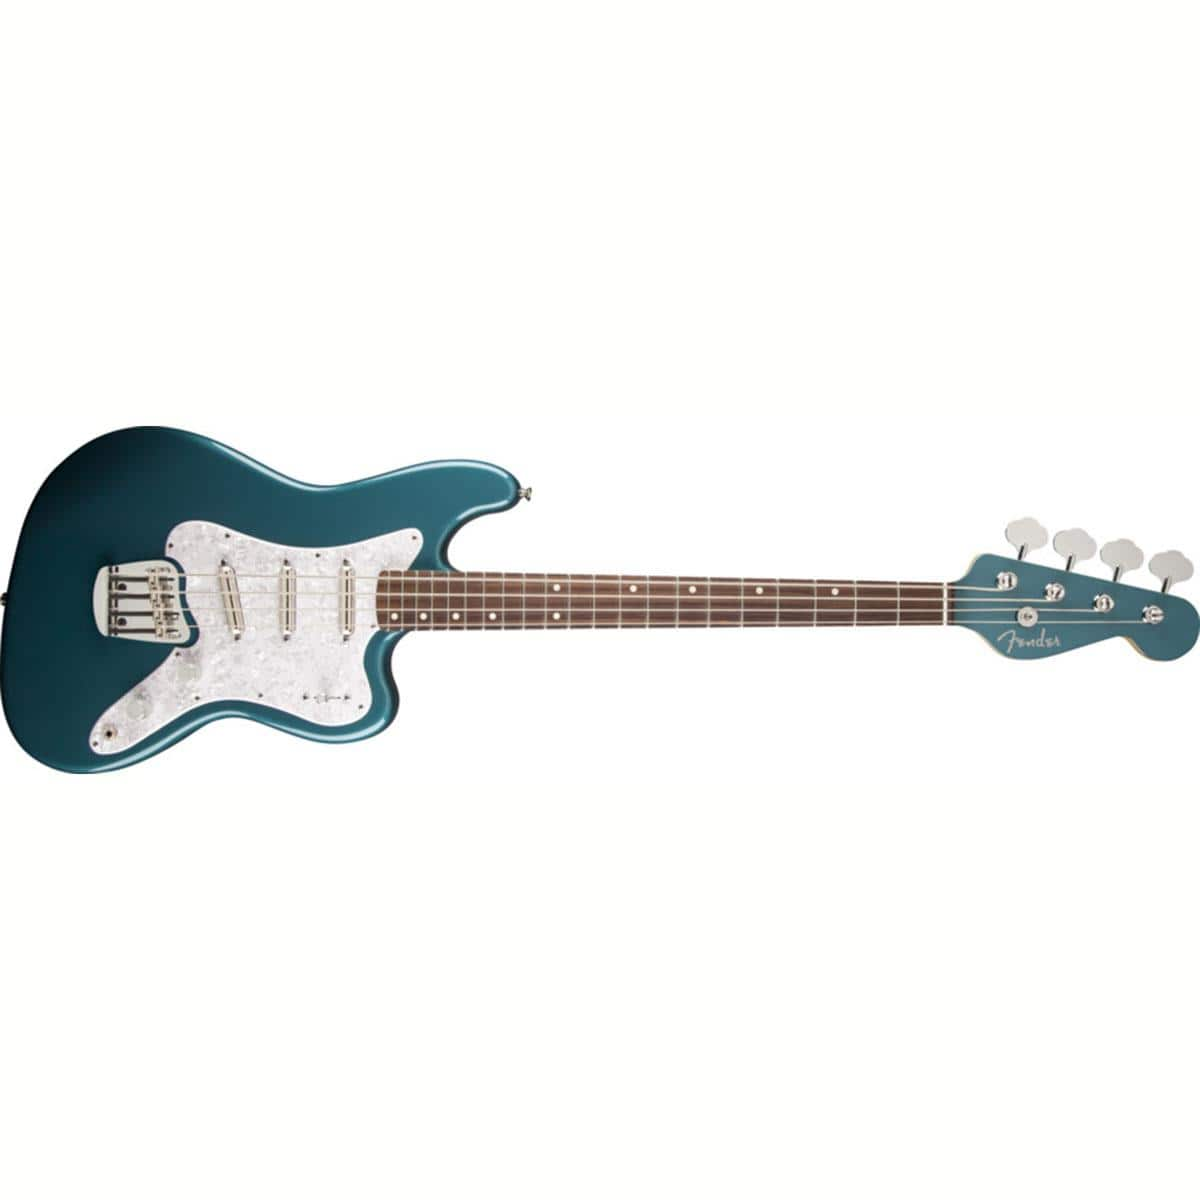 Fender Classic Player Rascal Bass Guitar $440 after $20 rebate + free shipping